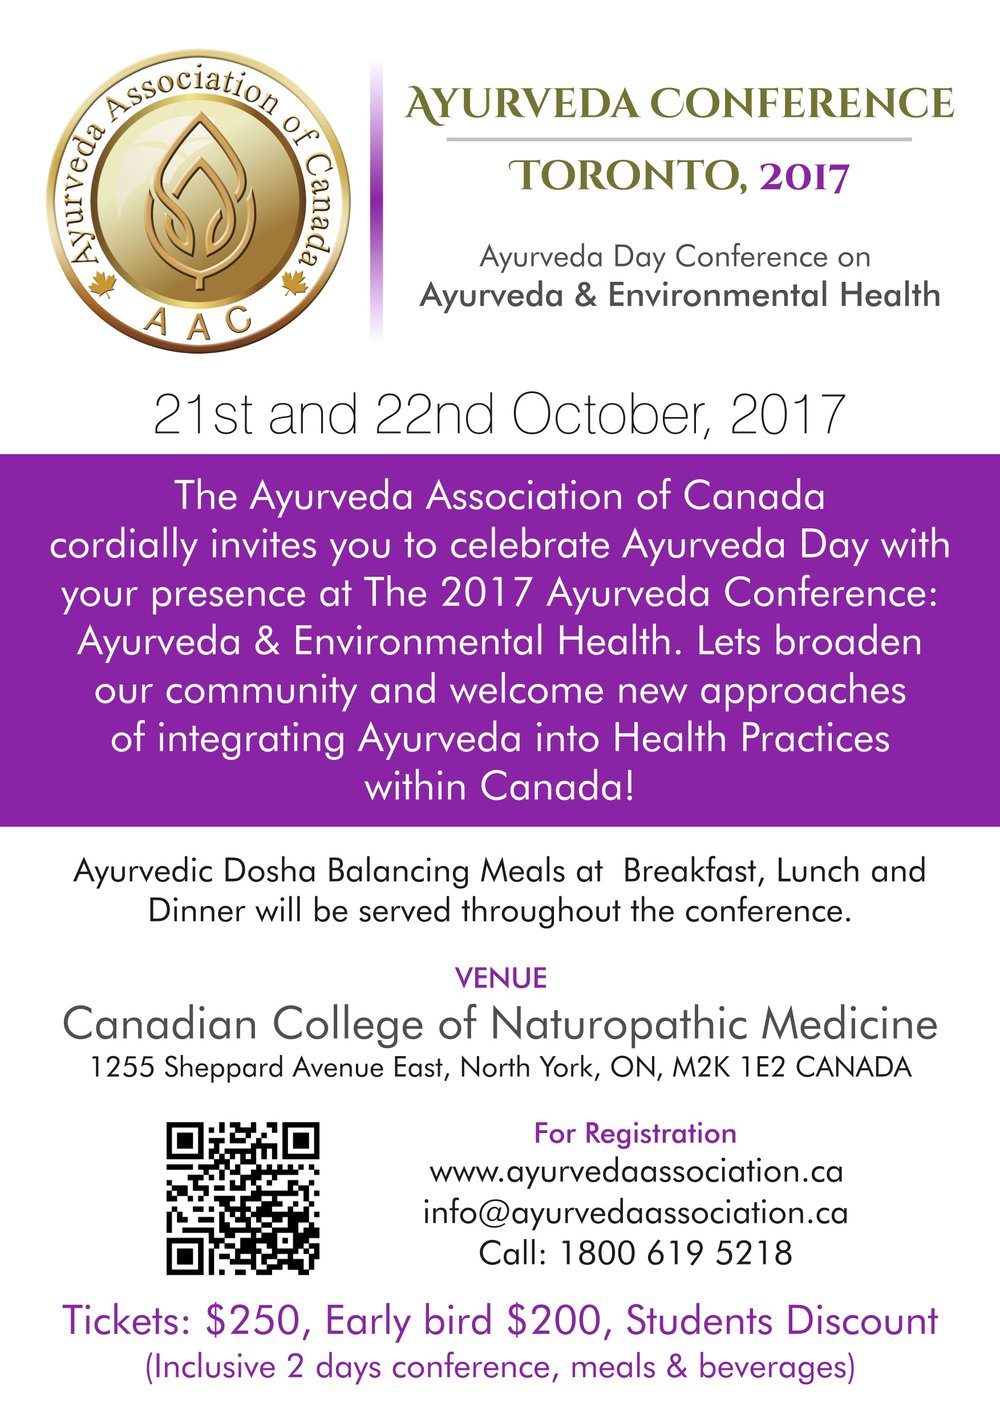 VISIT THE WEBSITE FOR DETAILS:  DR. ATHPARIA WILL BE SPEAKING ON DAY 2 OF THE CONFERENCE